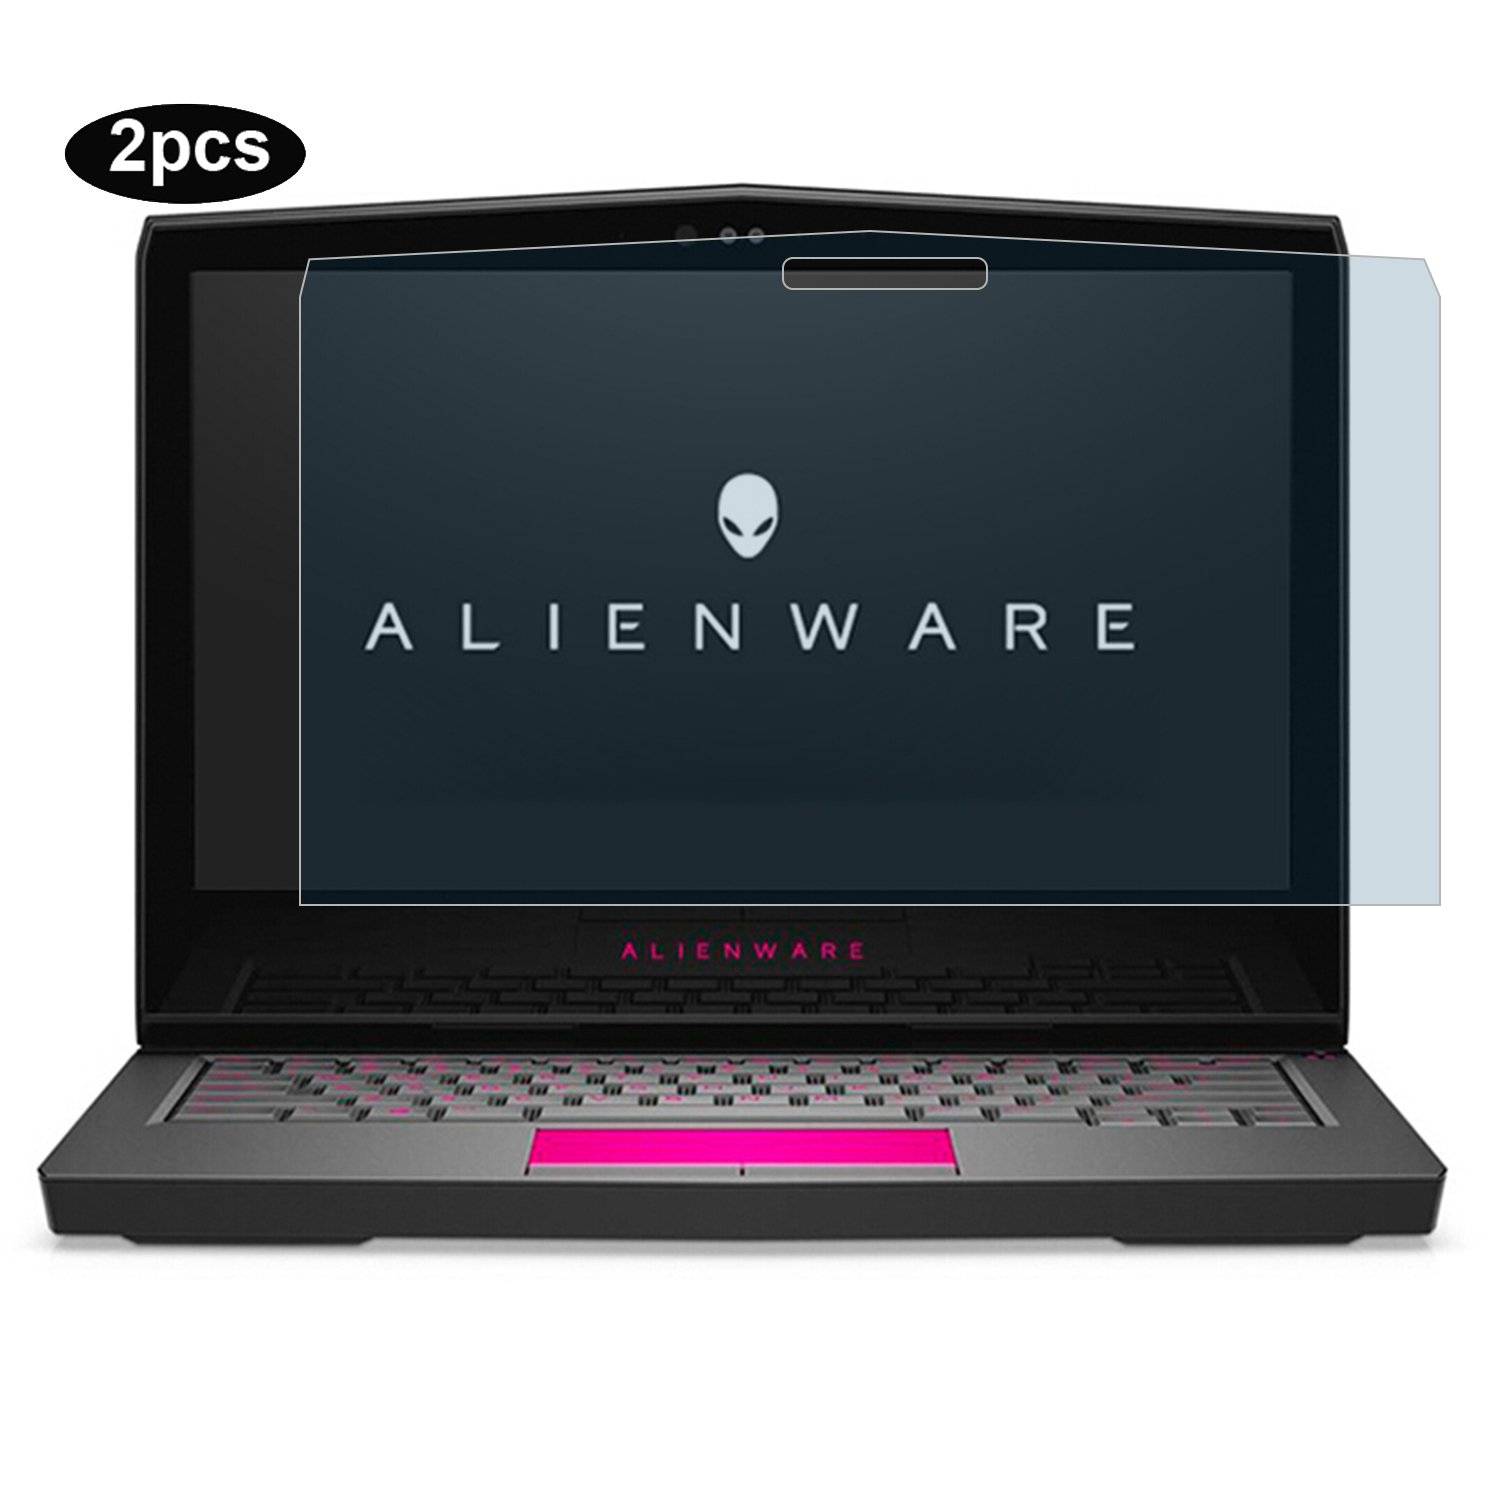 YOUPECK Laptop Screen Protector for Alienware 13 R3 AW13R3 2017, Anti Blue Light Screen Protector, LCD Screen Guard Film for Dell Alienware 13 R3 AW13R3-7000SLV 13.3'' Gaming Laptop (2-Pack)